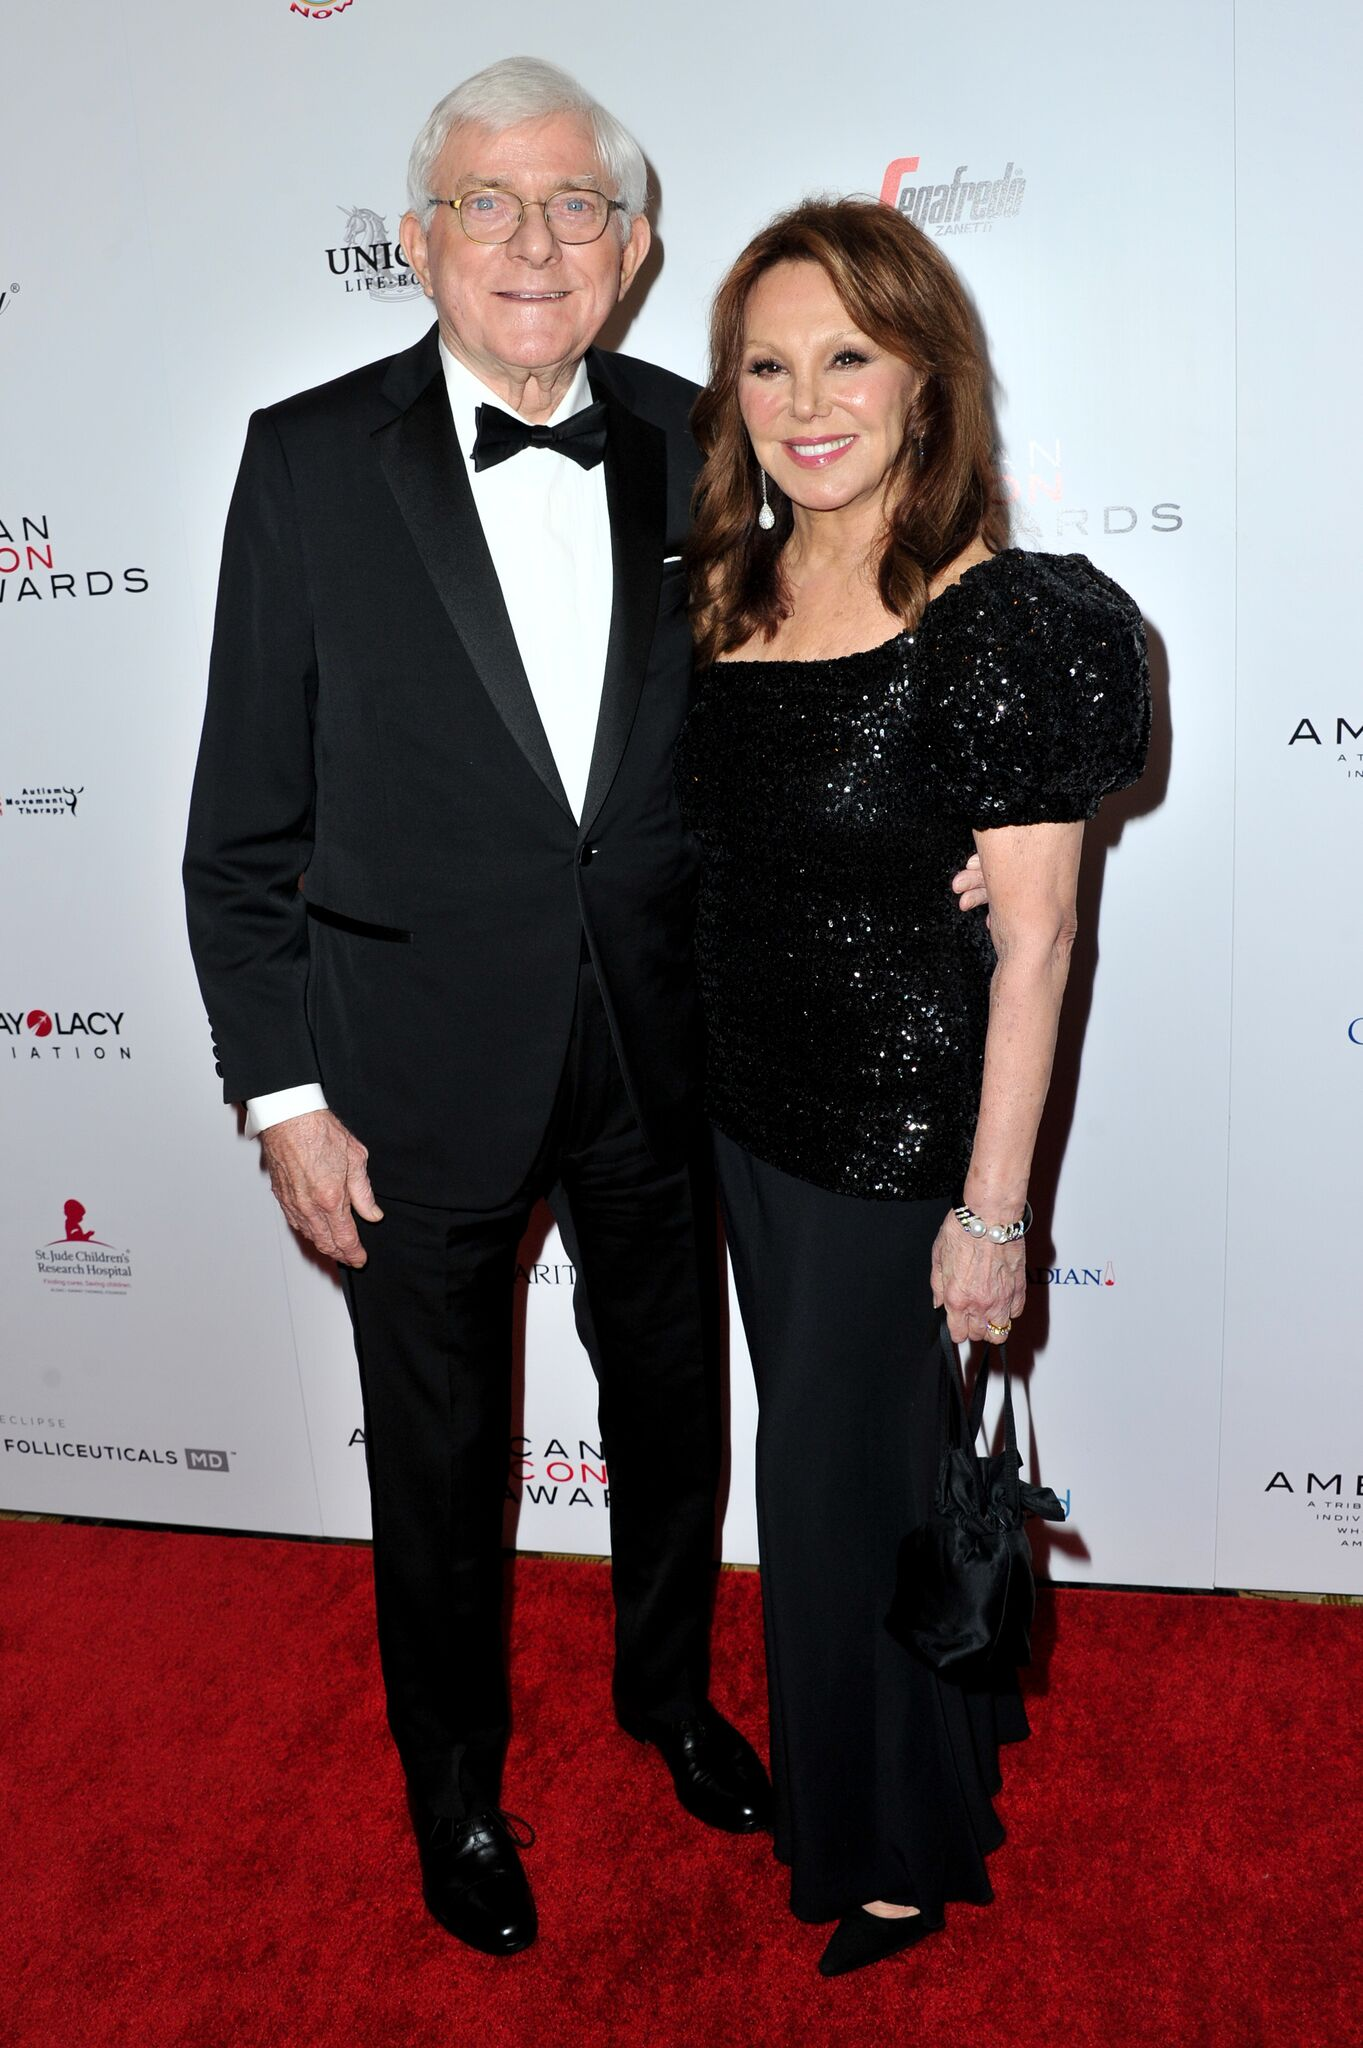 Phil Donahue and Marlo Thomas attend the American Icon Awards at the Beverly Wilshire Four Seasons Hotel | Getty Images